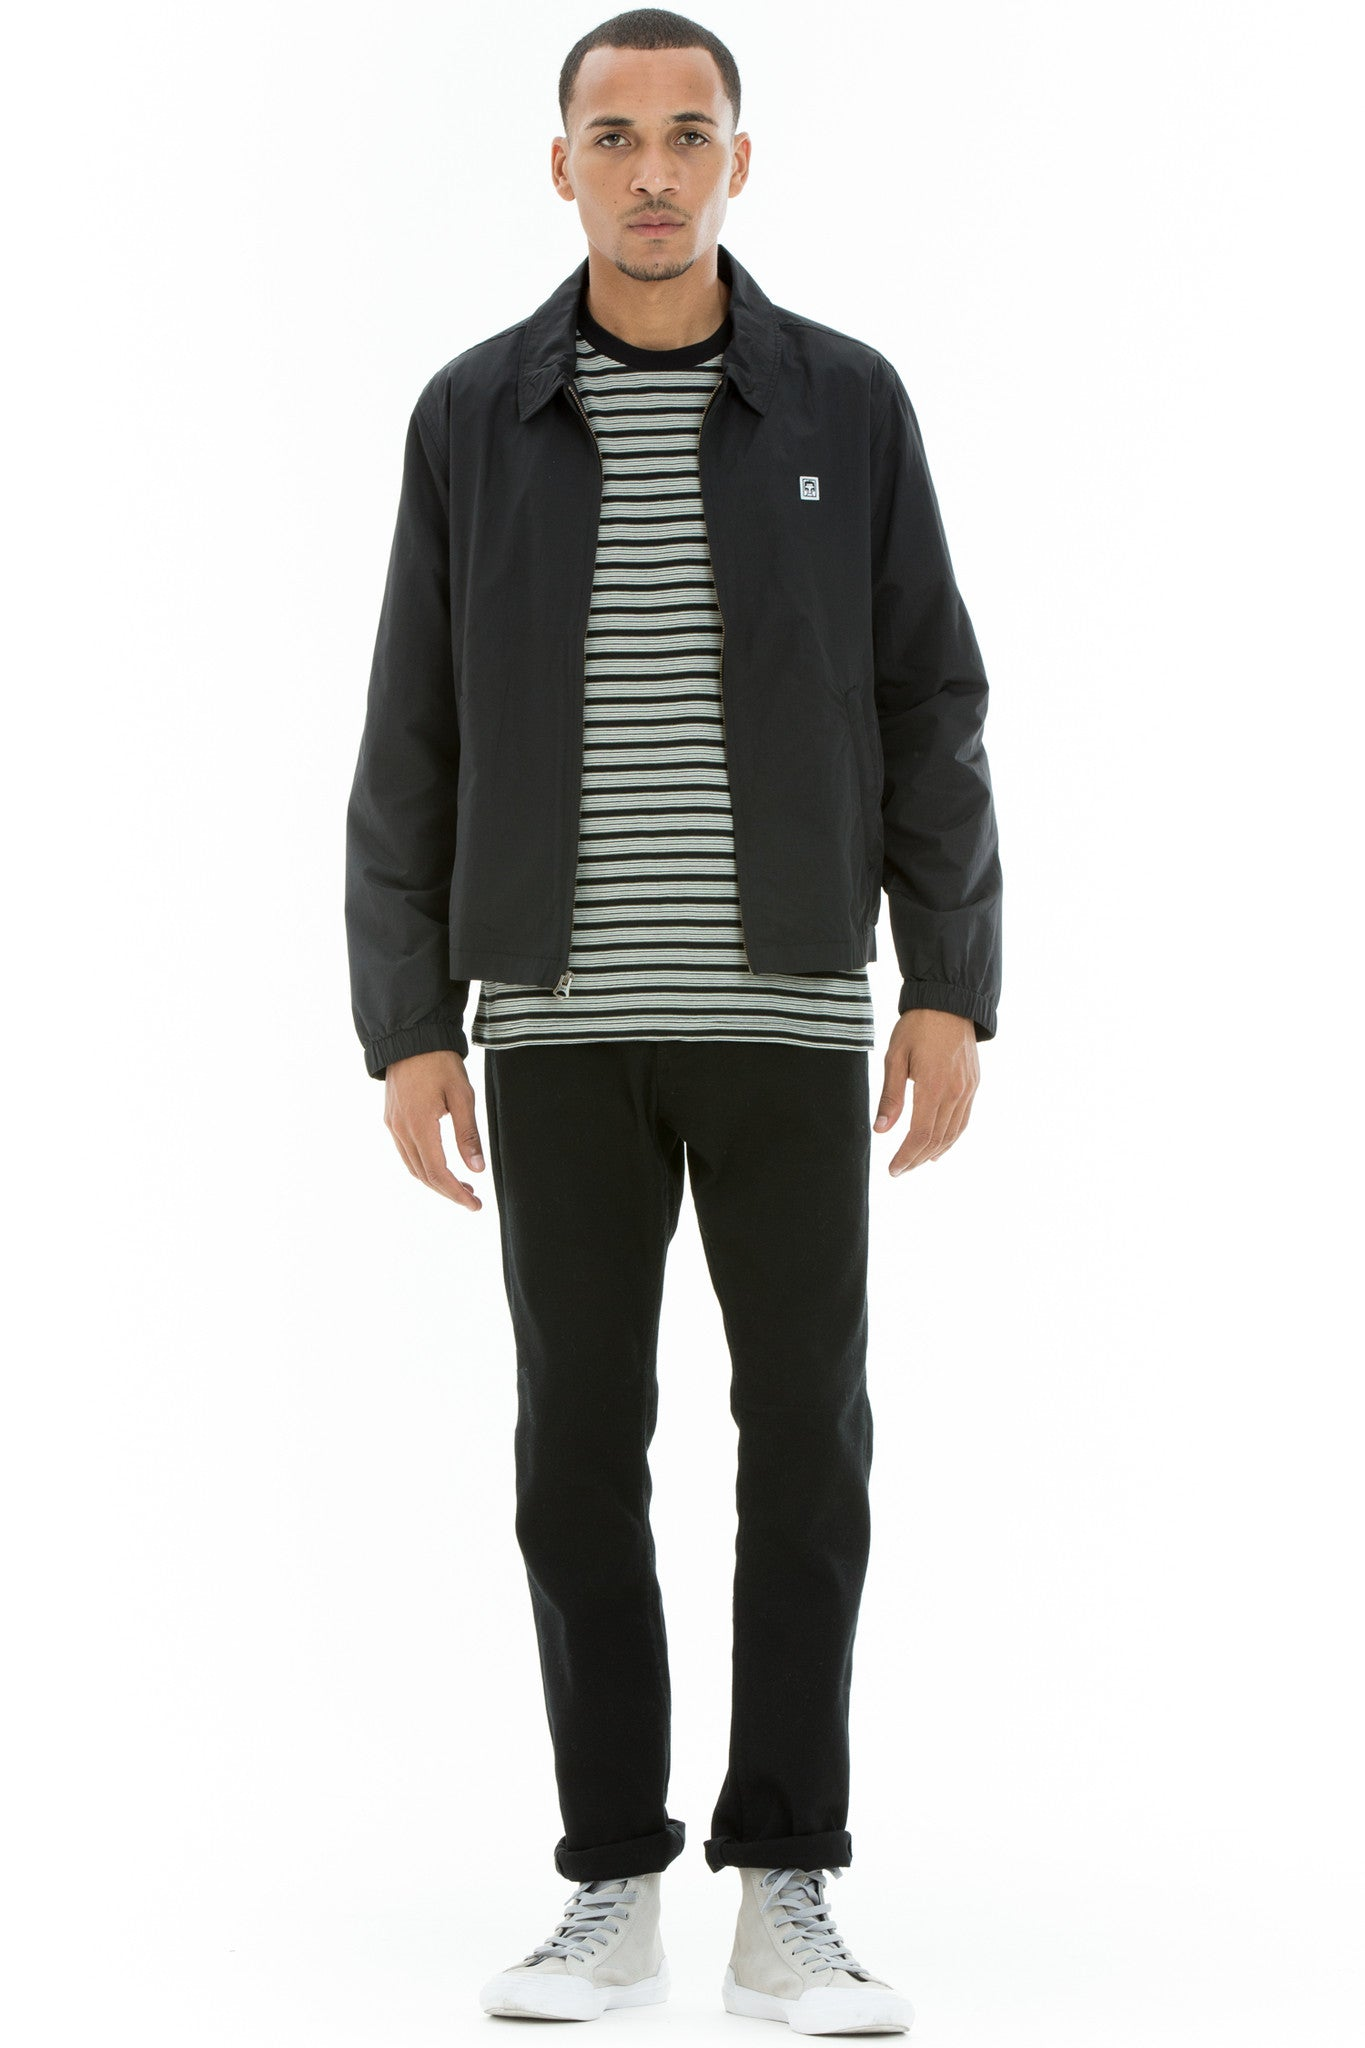 OBEY - Eighty Nine Men's Casual Jacket, Black - The Giant Peach